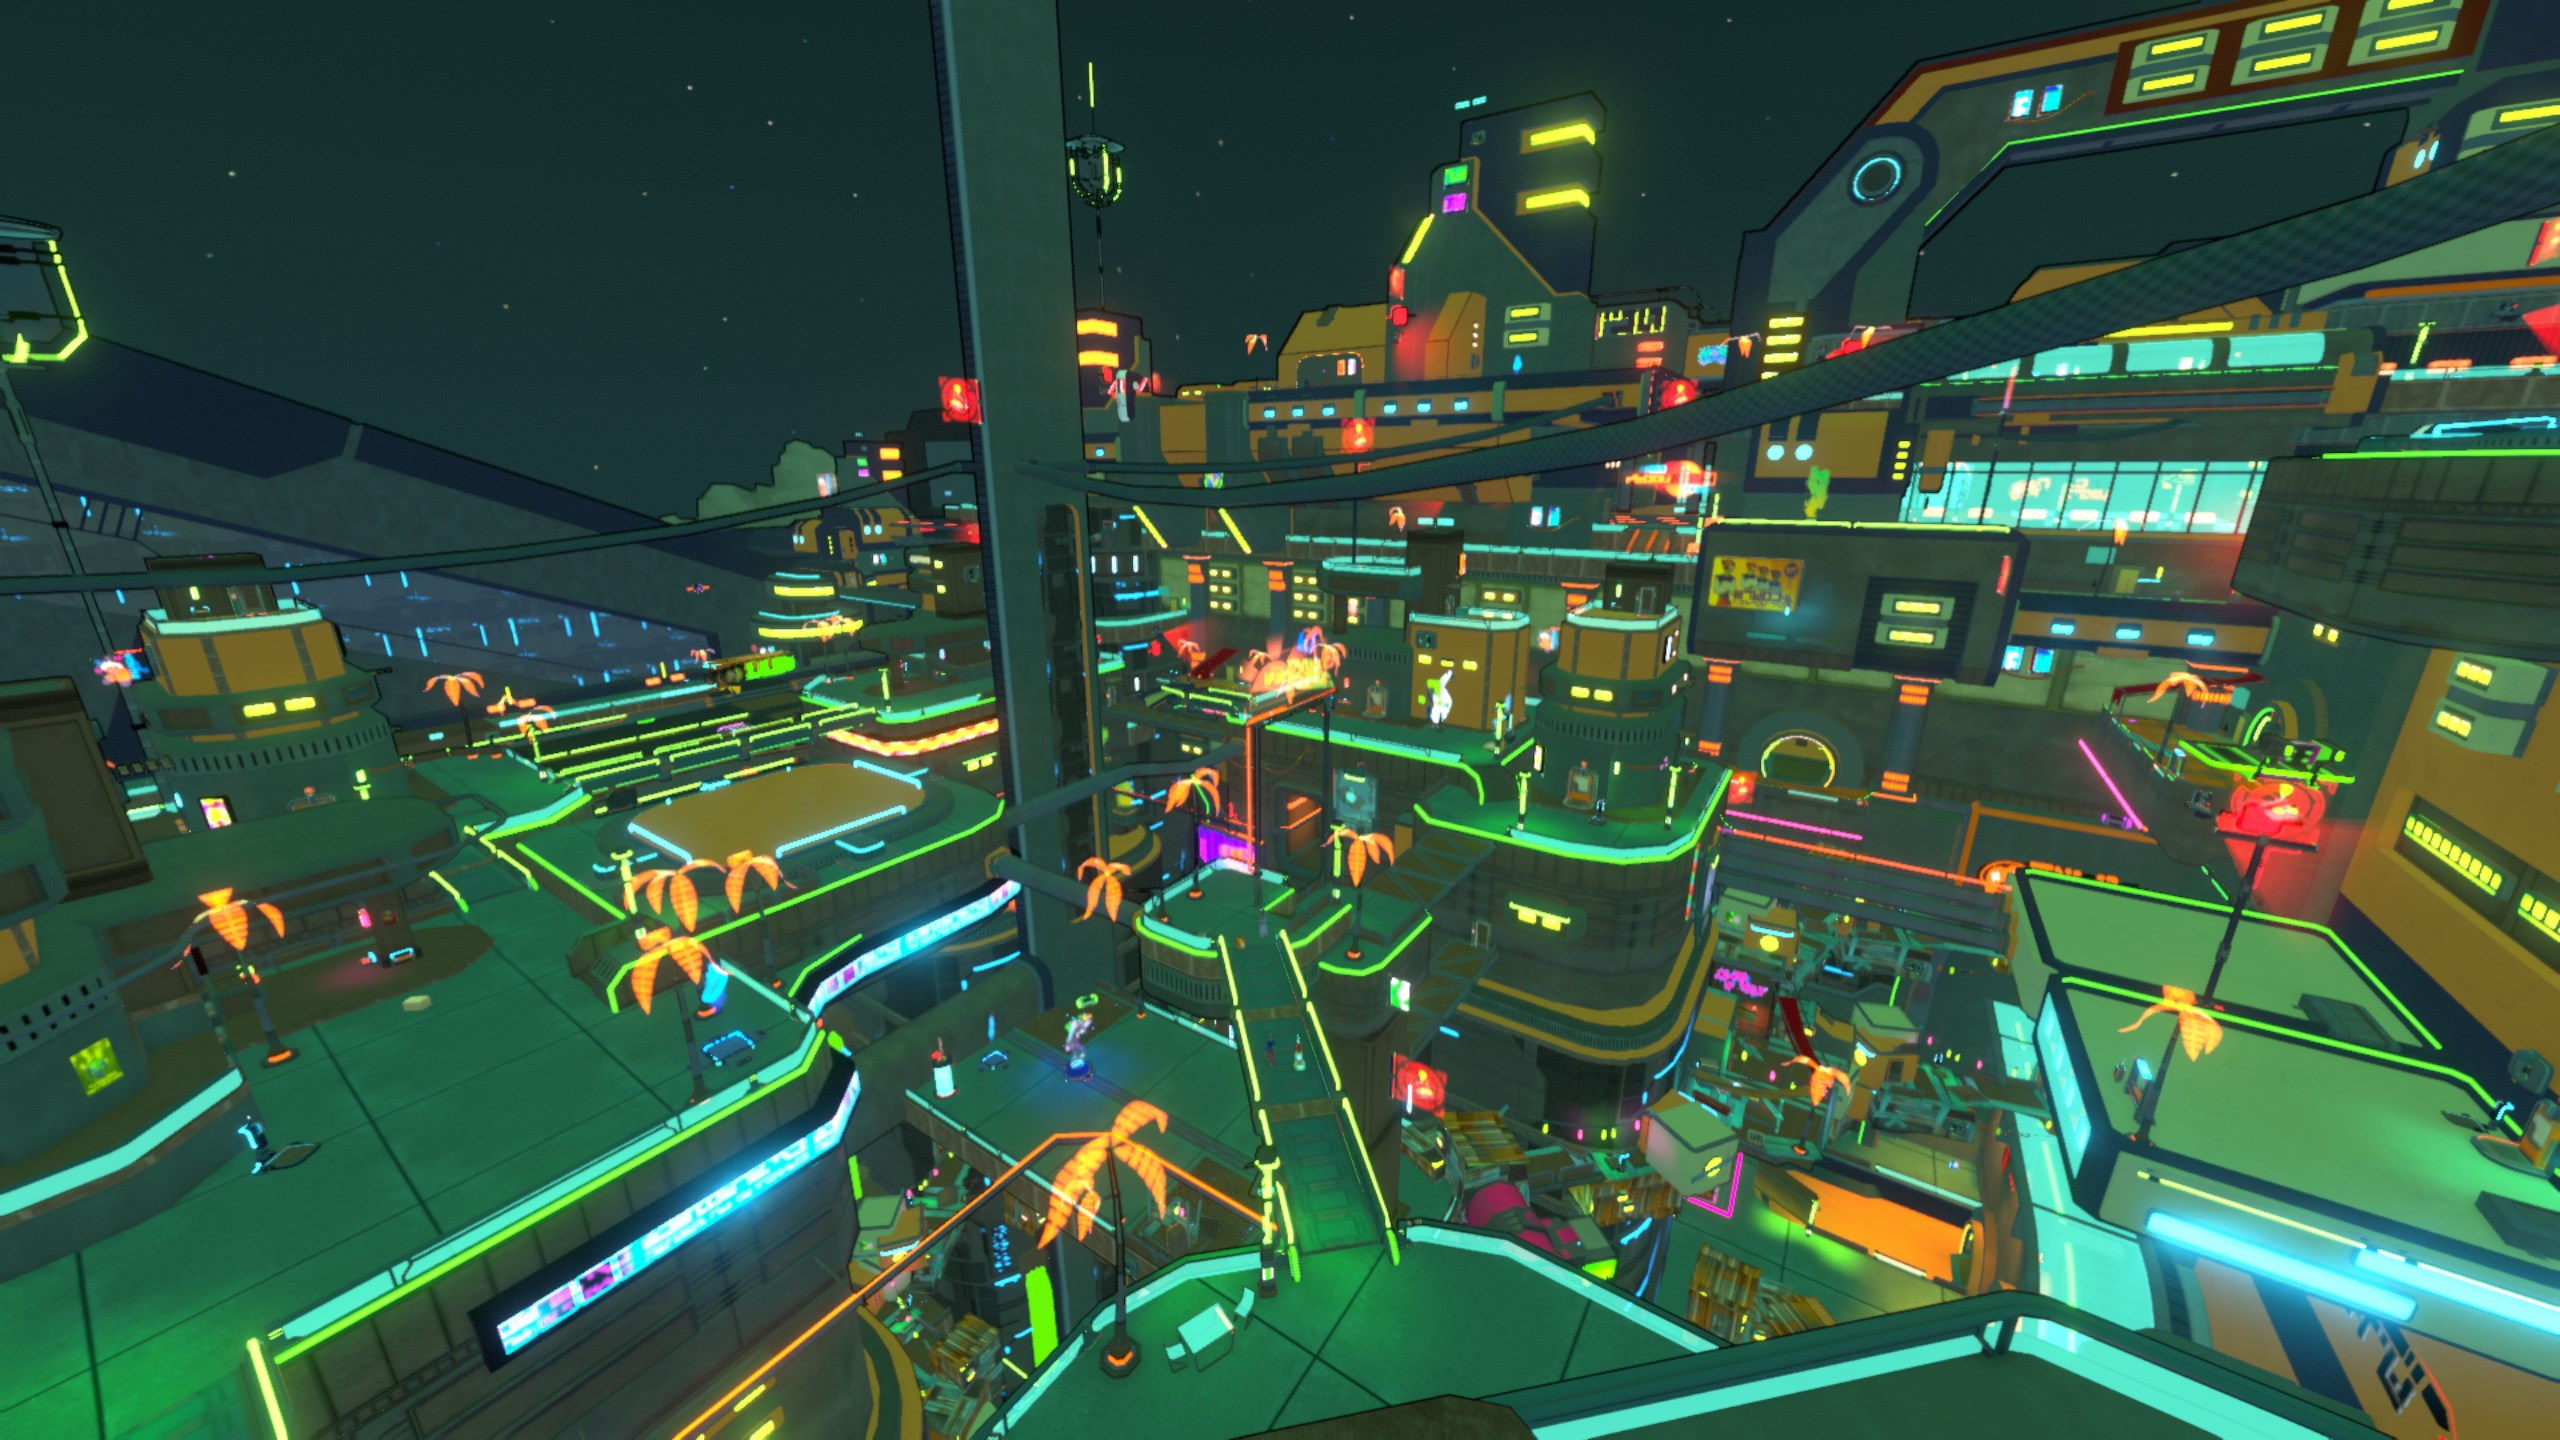 hover city by night 1